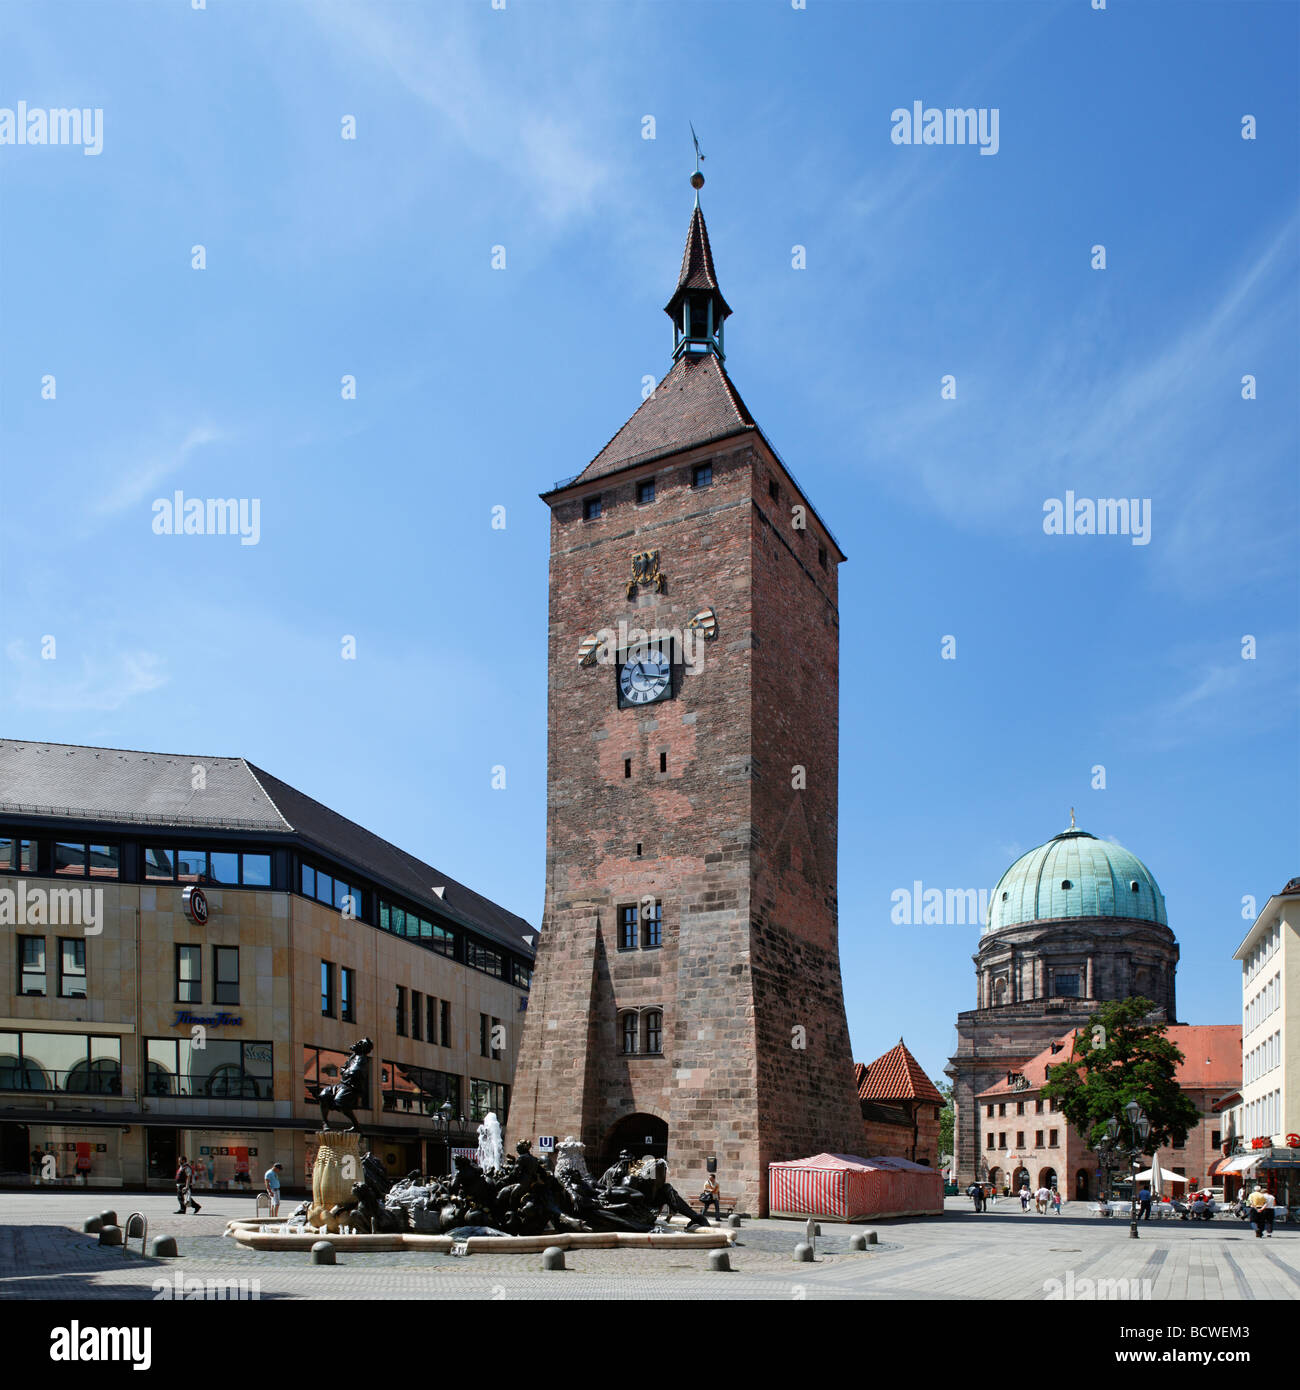 Weisser Turm, White Tower, built ca. 1250, 'Ehekarusell' fountain, Ludwigsplatz square, St. Elisabeth church, - Stock Image